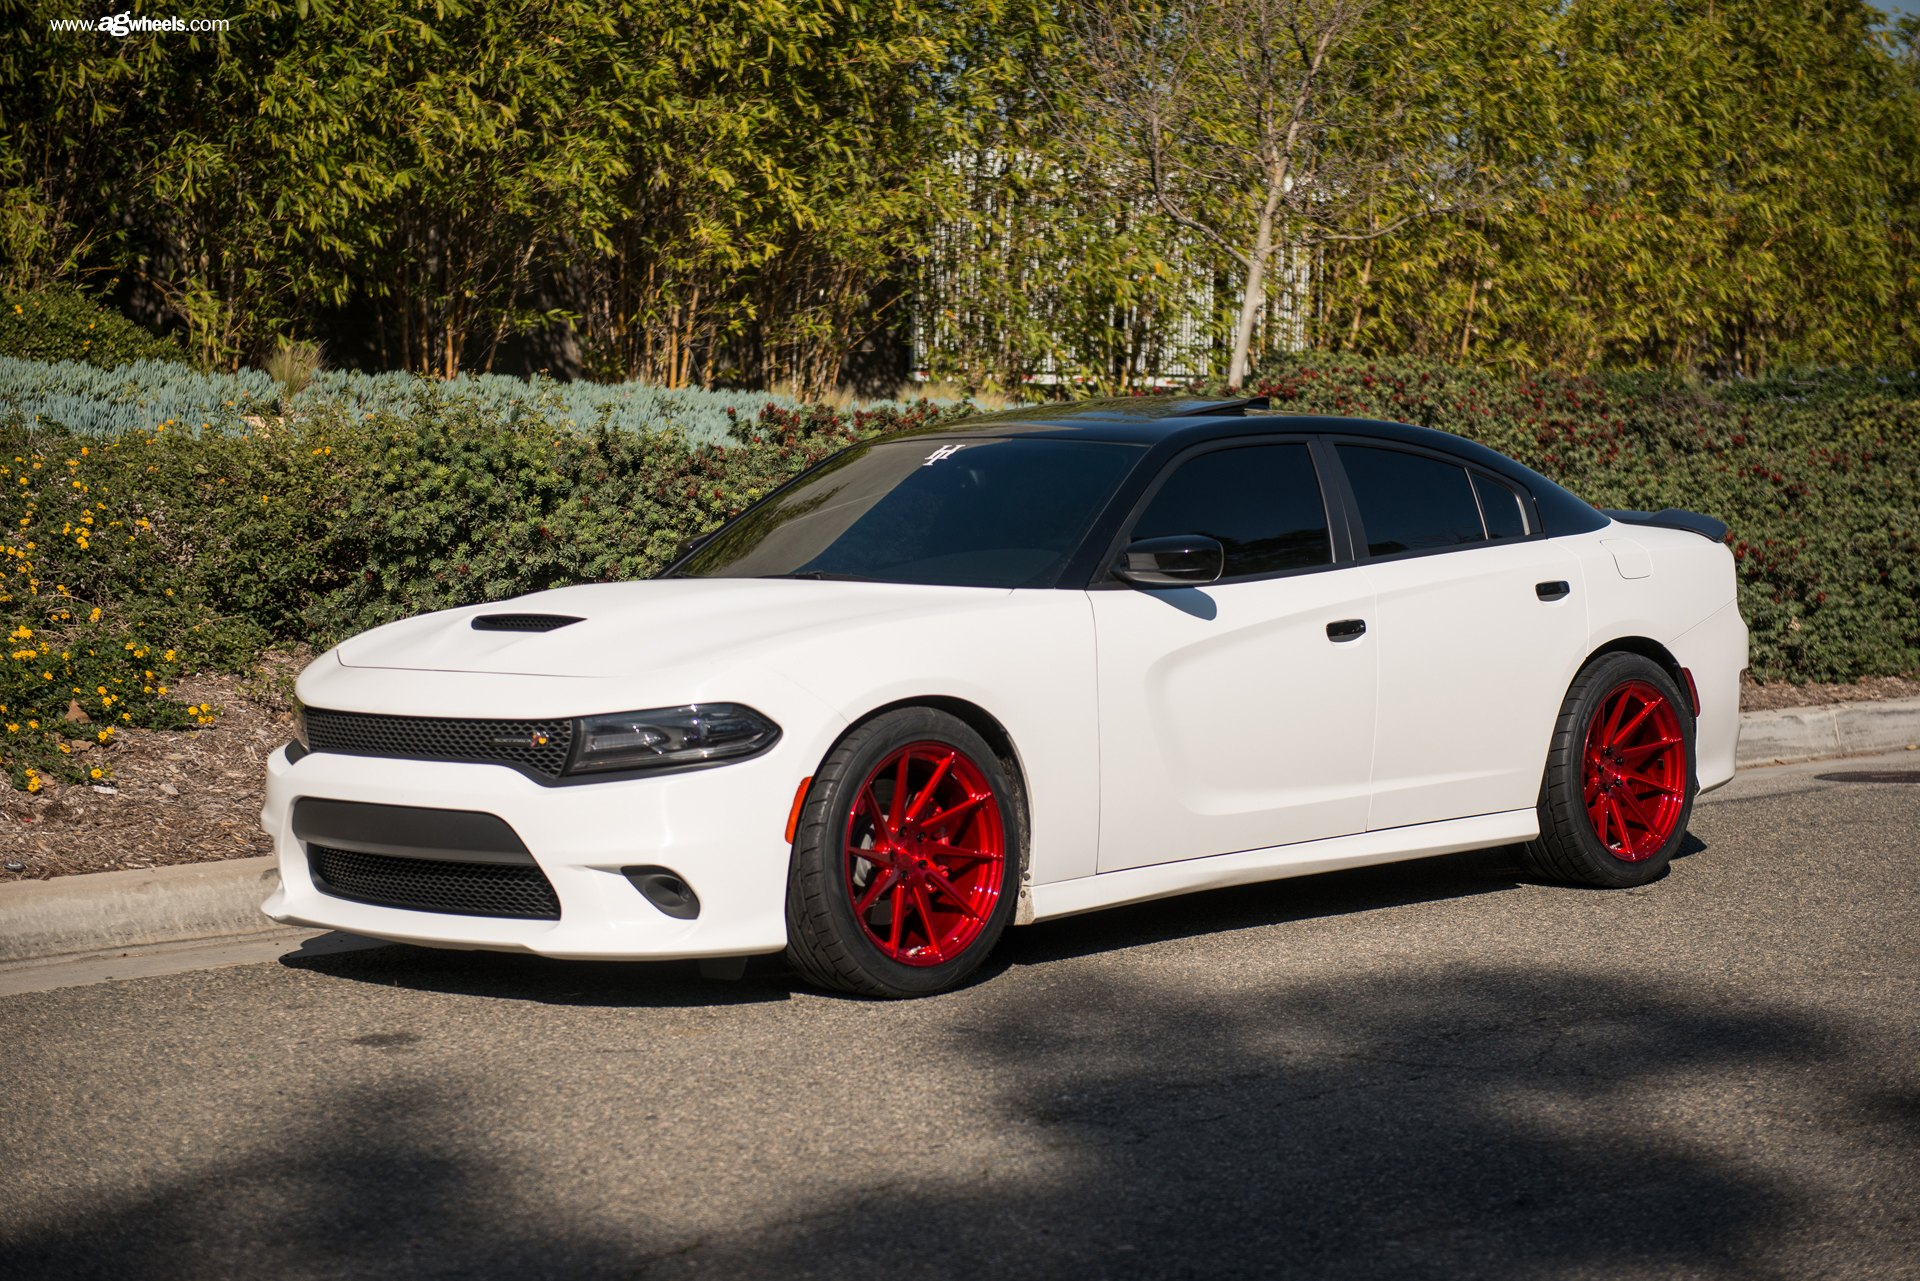 White Dodge Charger >> Stylish Warrior White Dodge Charger With Black Roof And Red Wheels